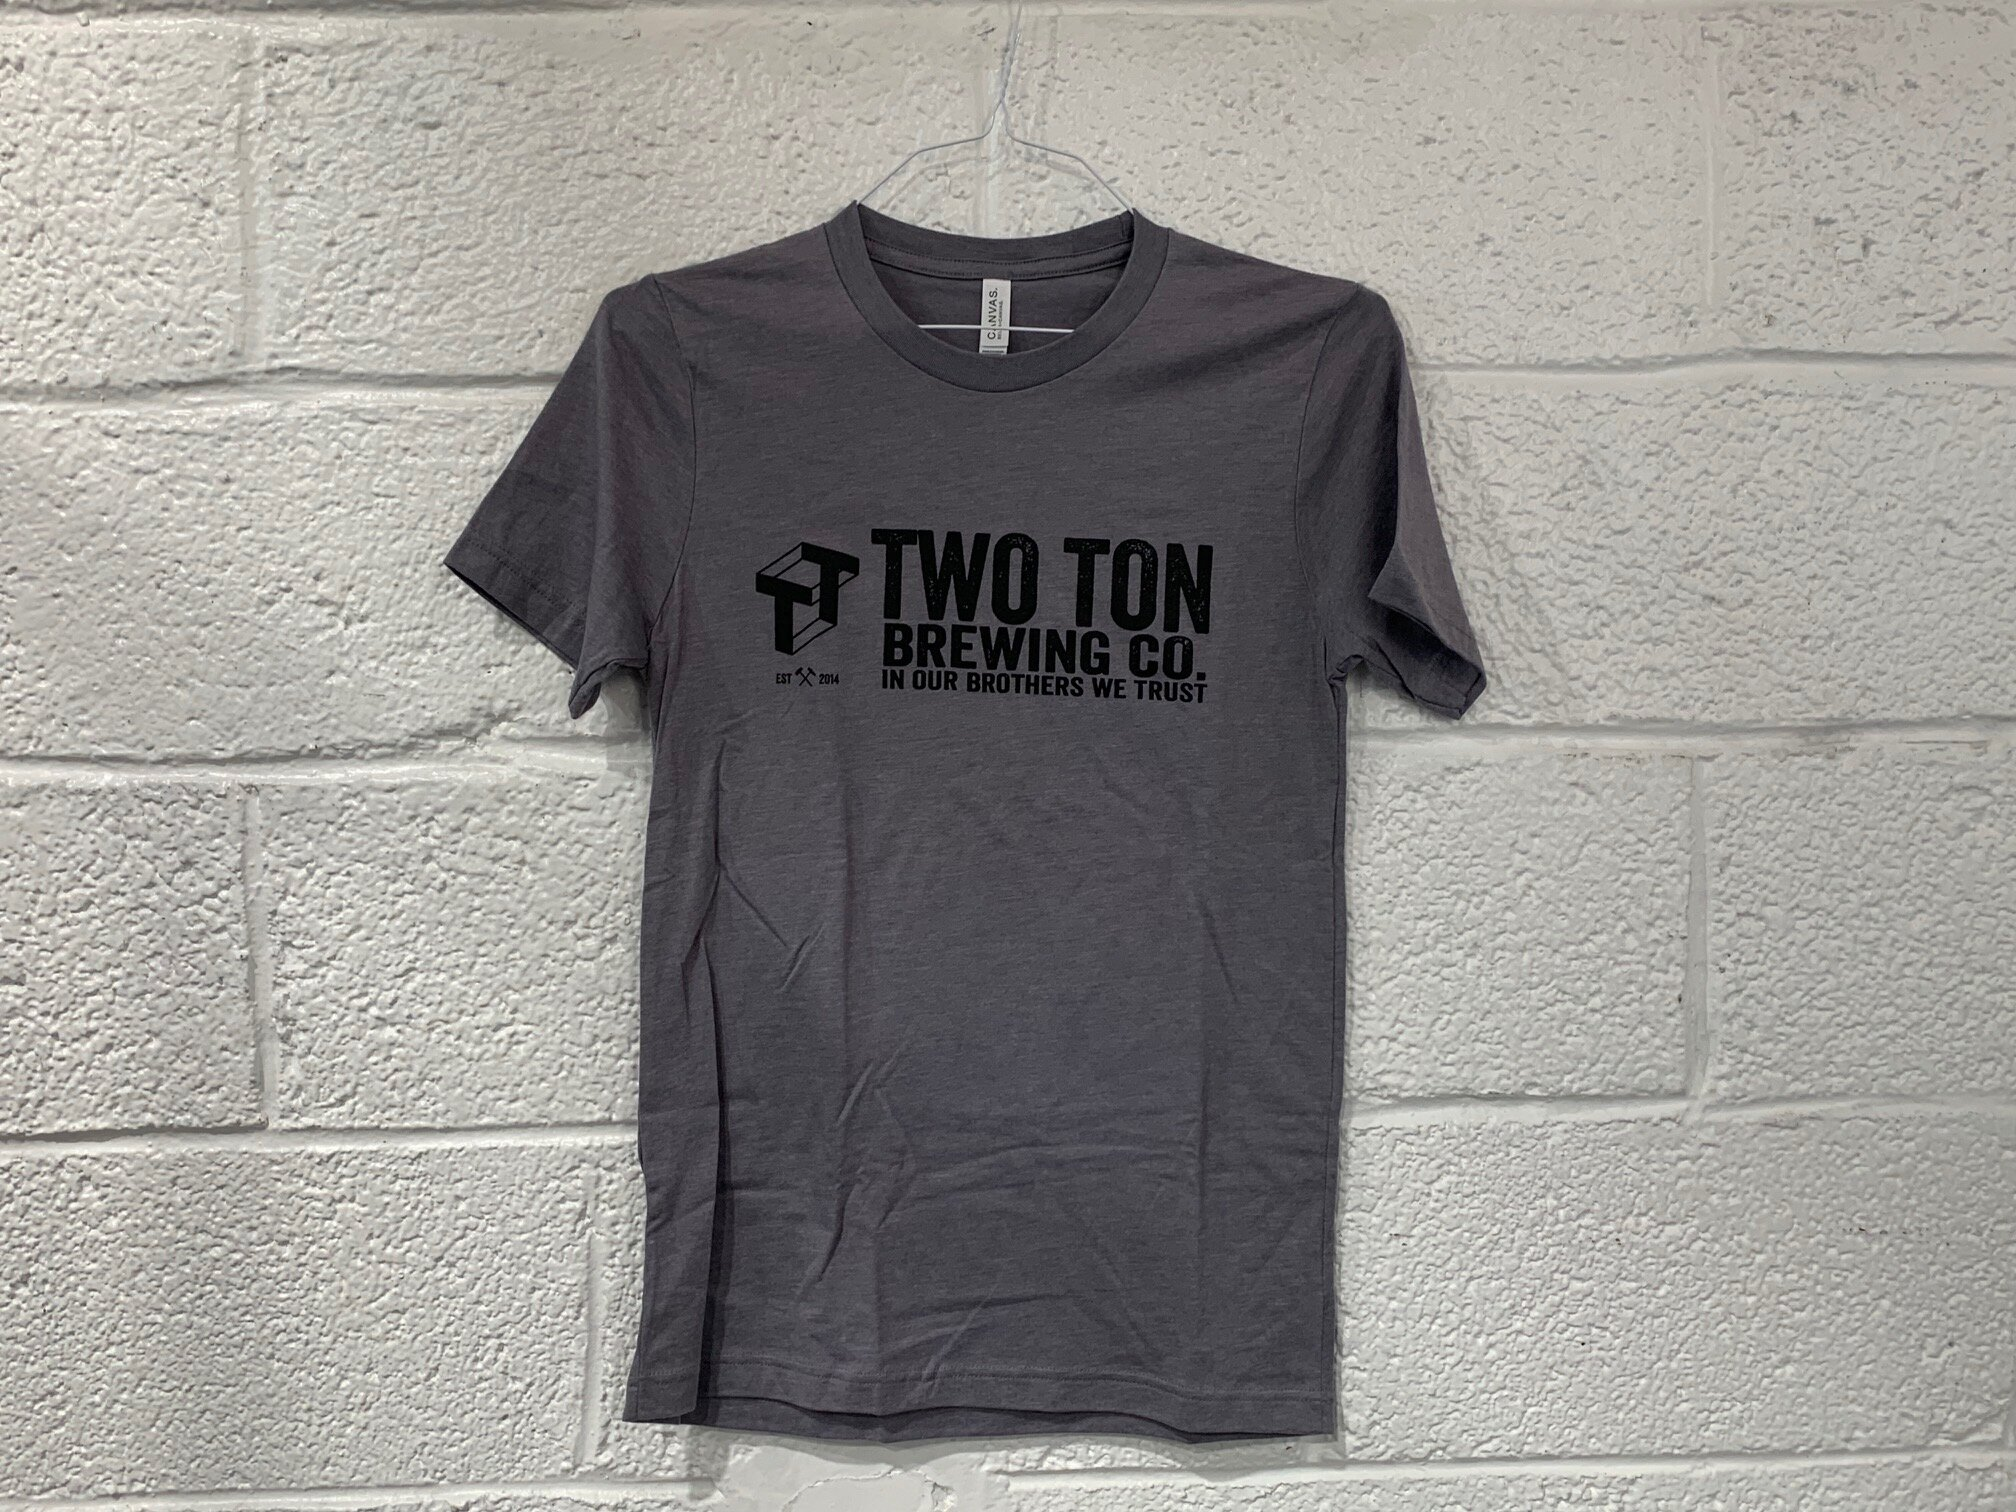 Two Ton Logo T-shirt   $ 15.00   Unisex, black logo on dark gray T-shirt.  Multiple sizes available.